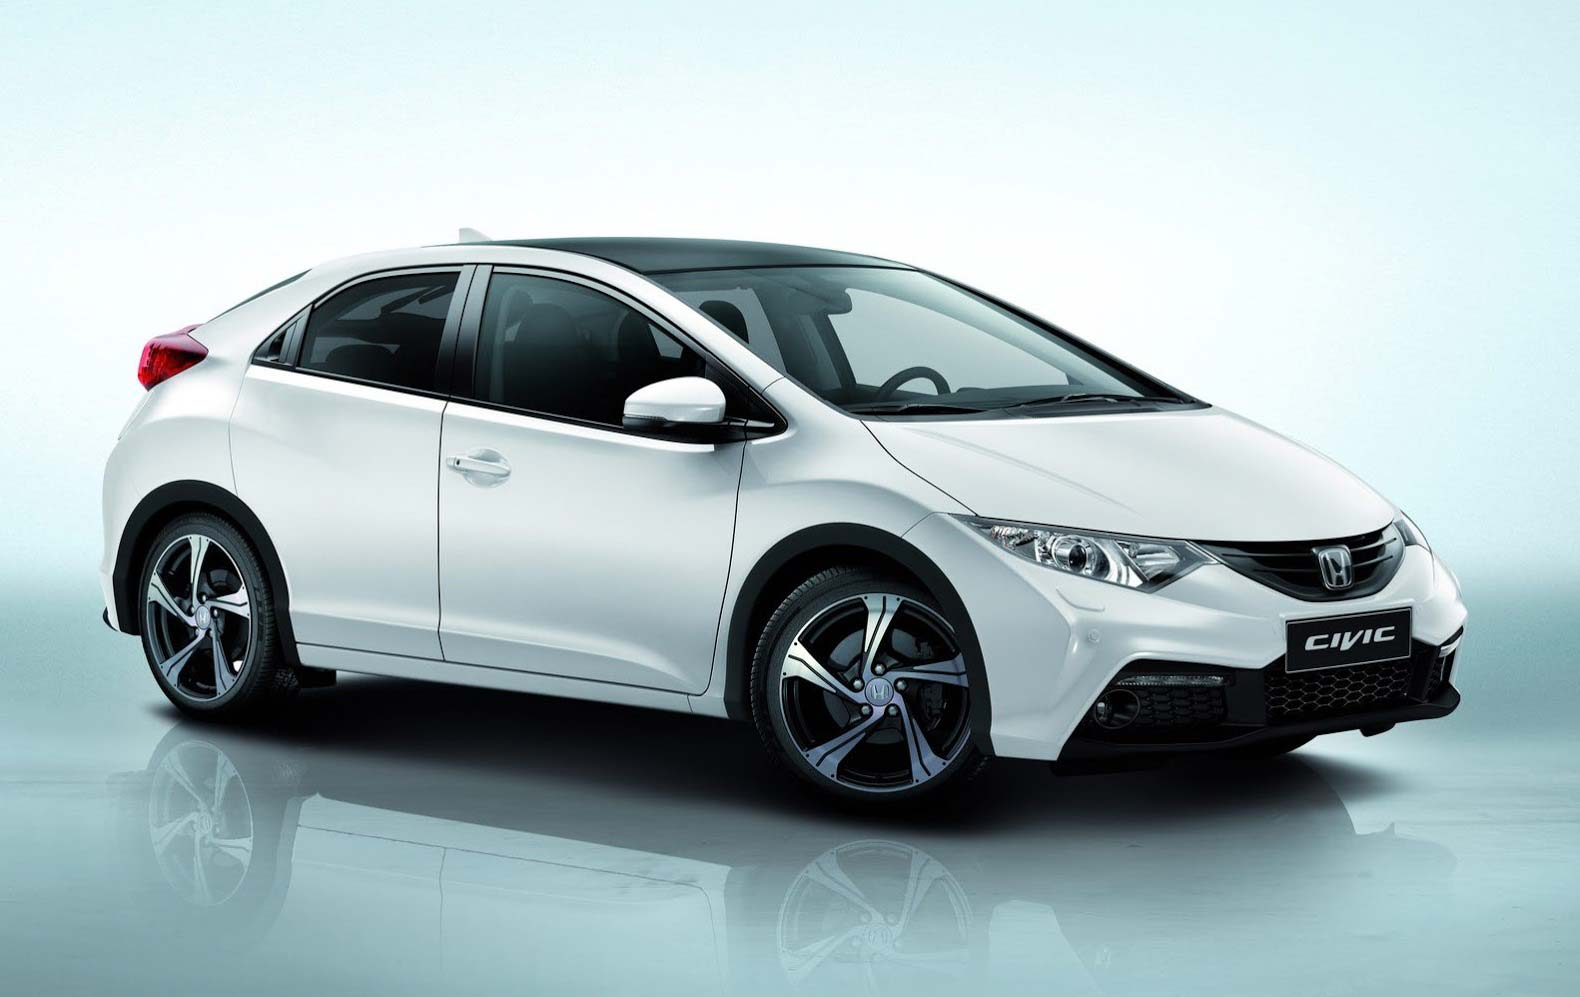 New-Honda-Civic-2013-Euro-Spec-HD-Wallpaper